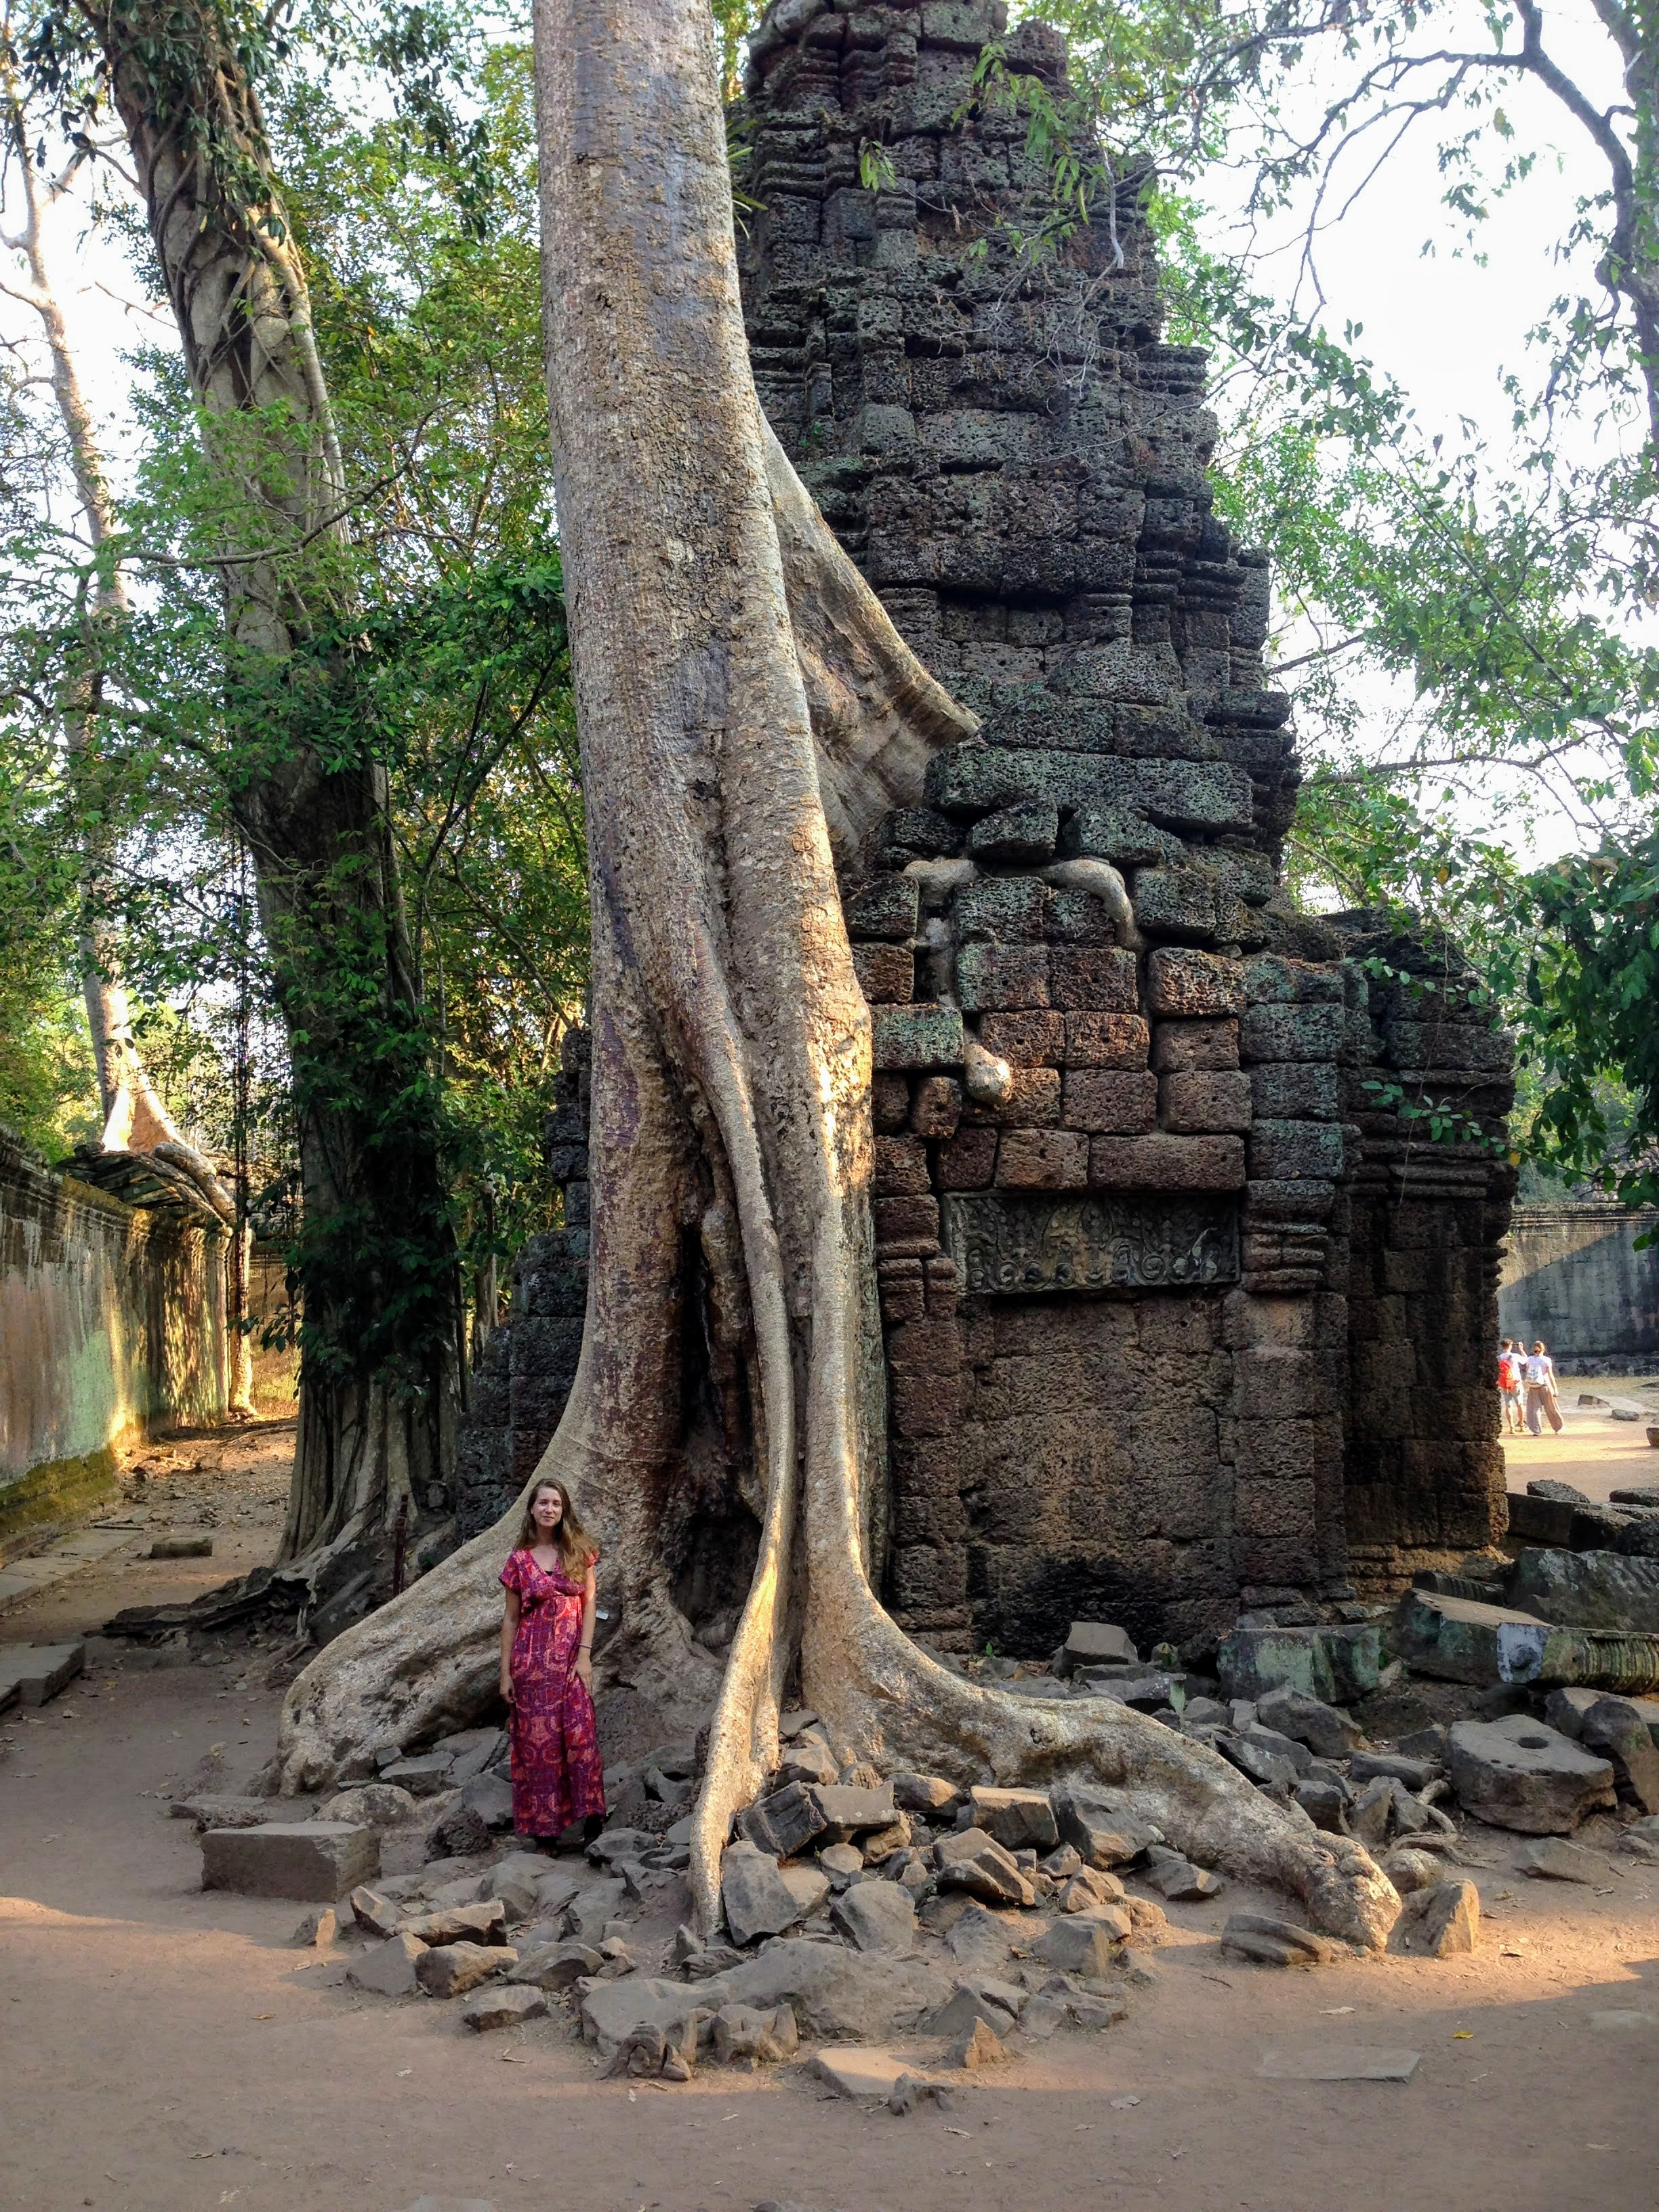 Cambodia Siem Reap Angkor Wat temples solo female travel